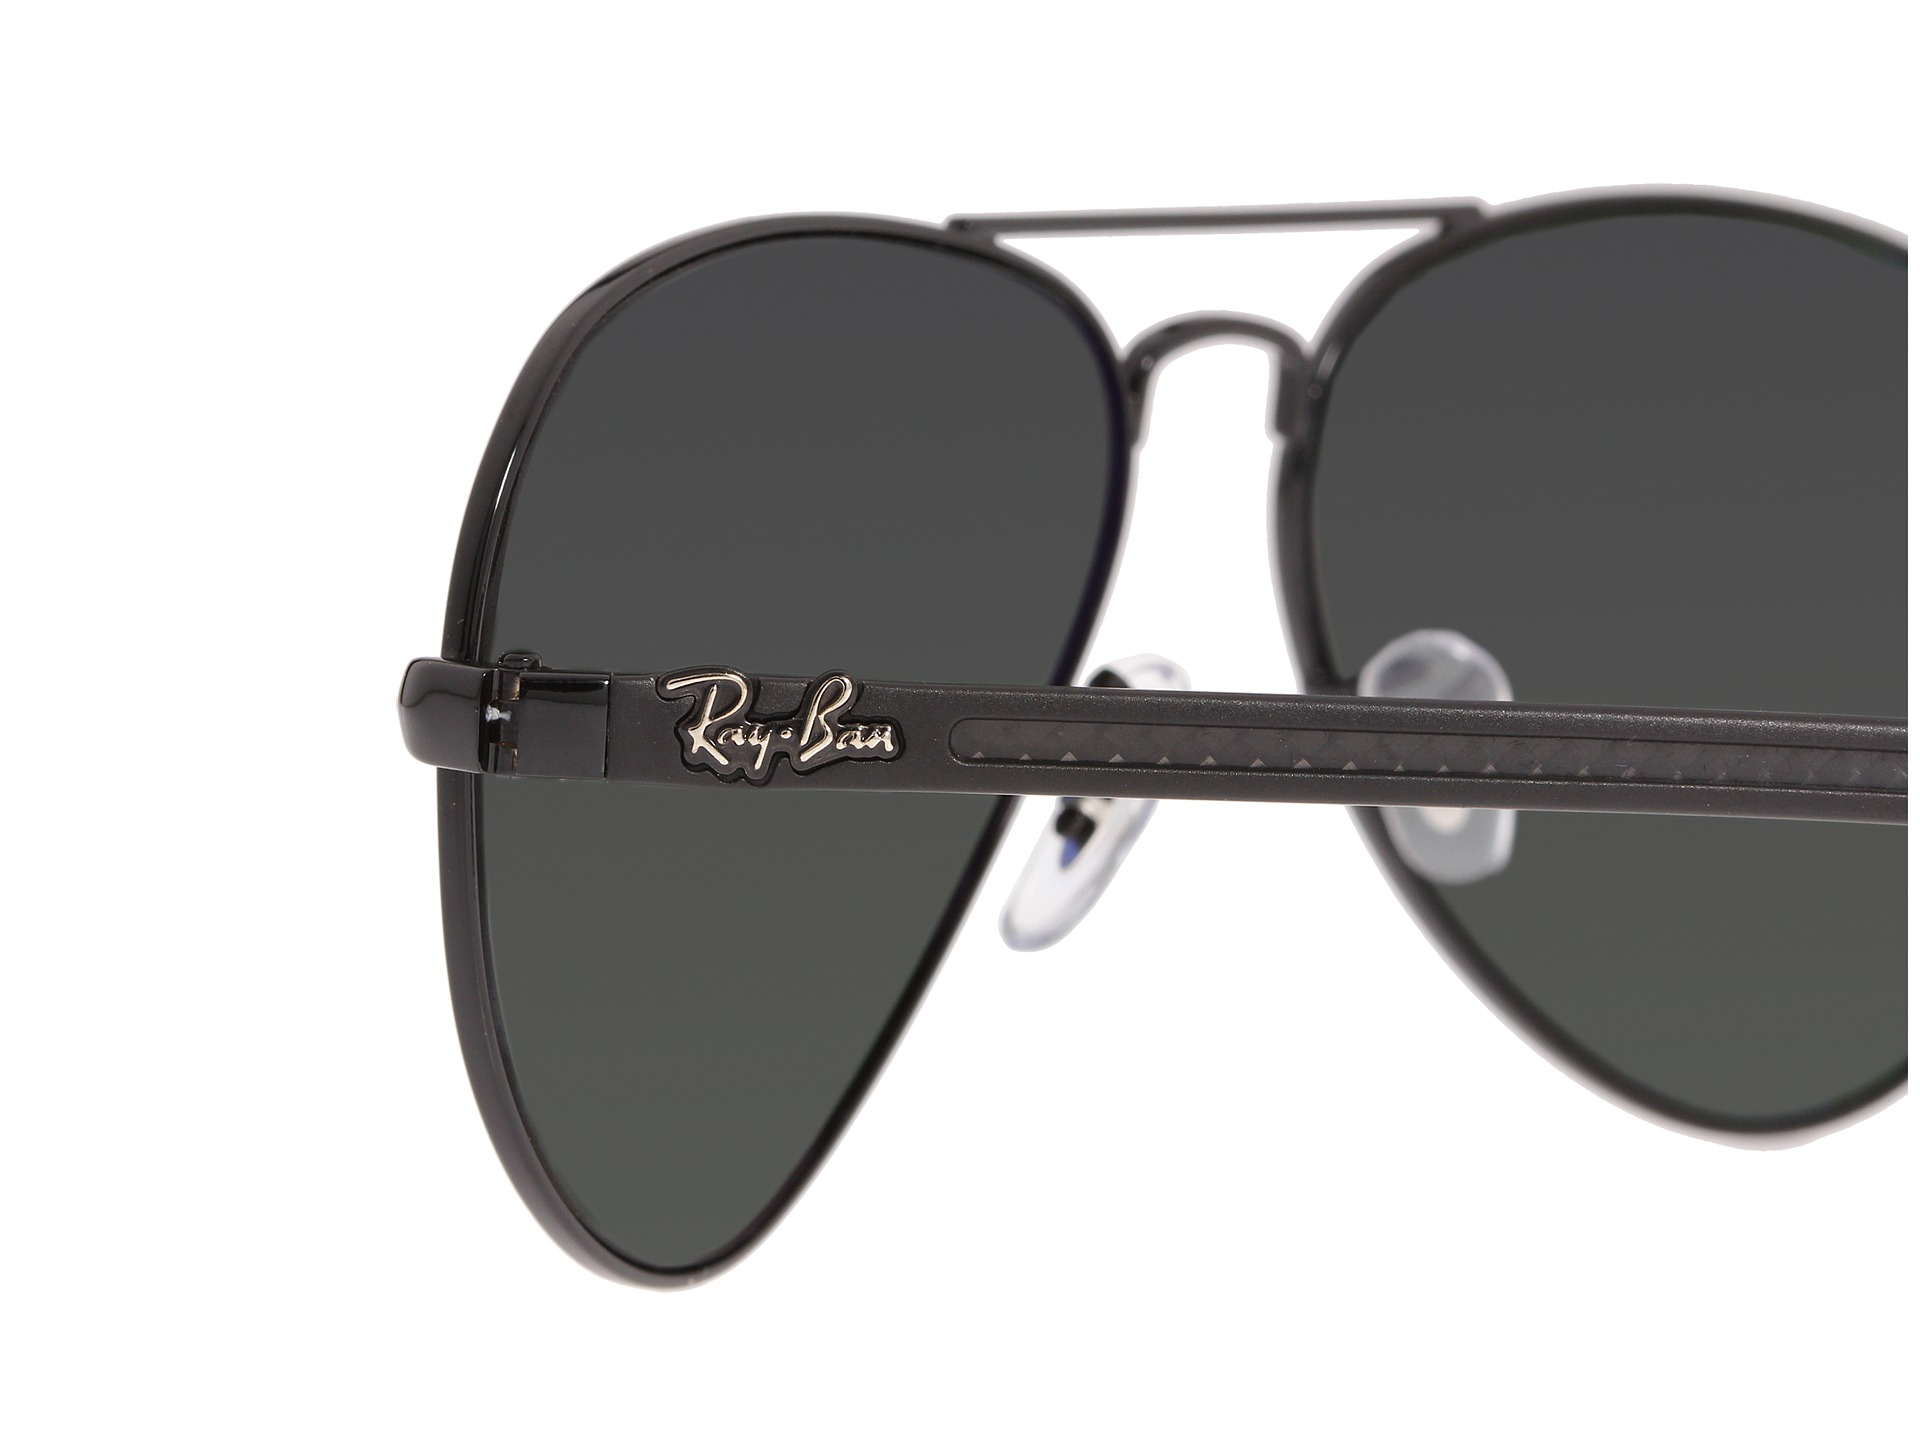 0d9d9571778 Ray Ban Aviator Tech Polarized Review « Heritage Malta